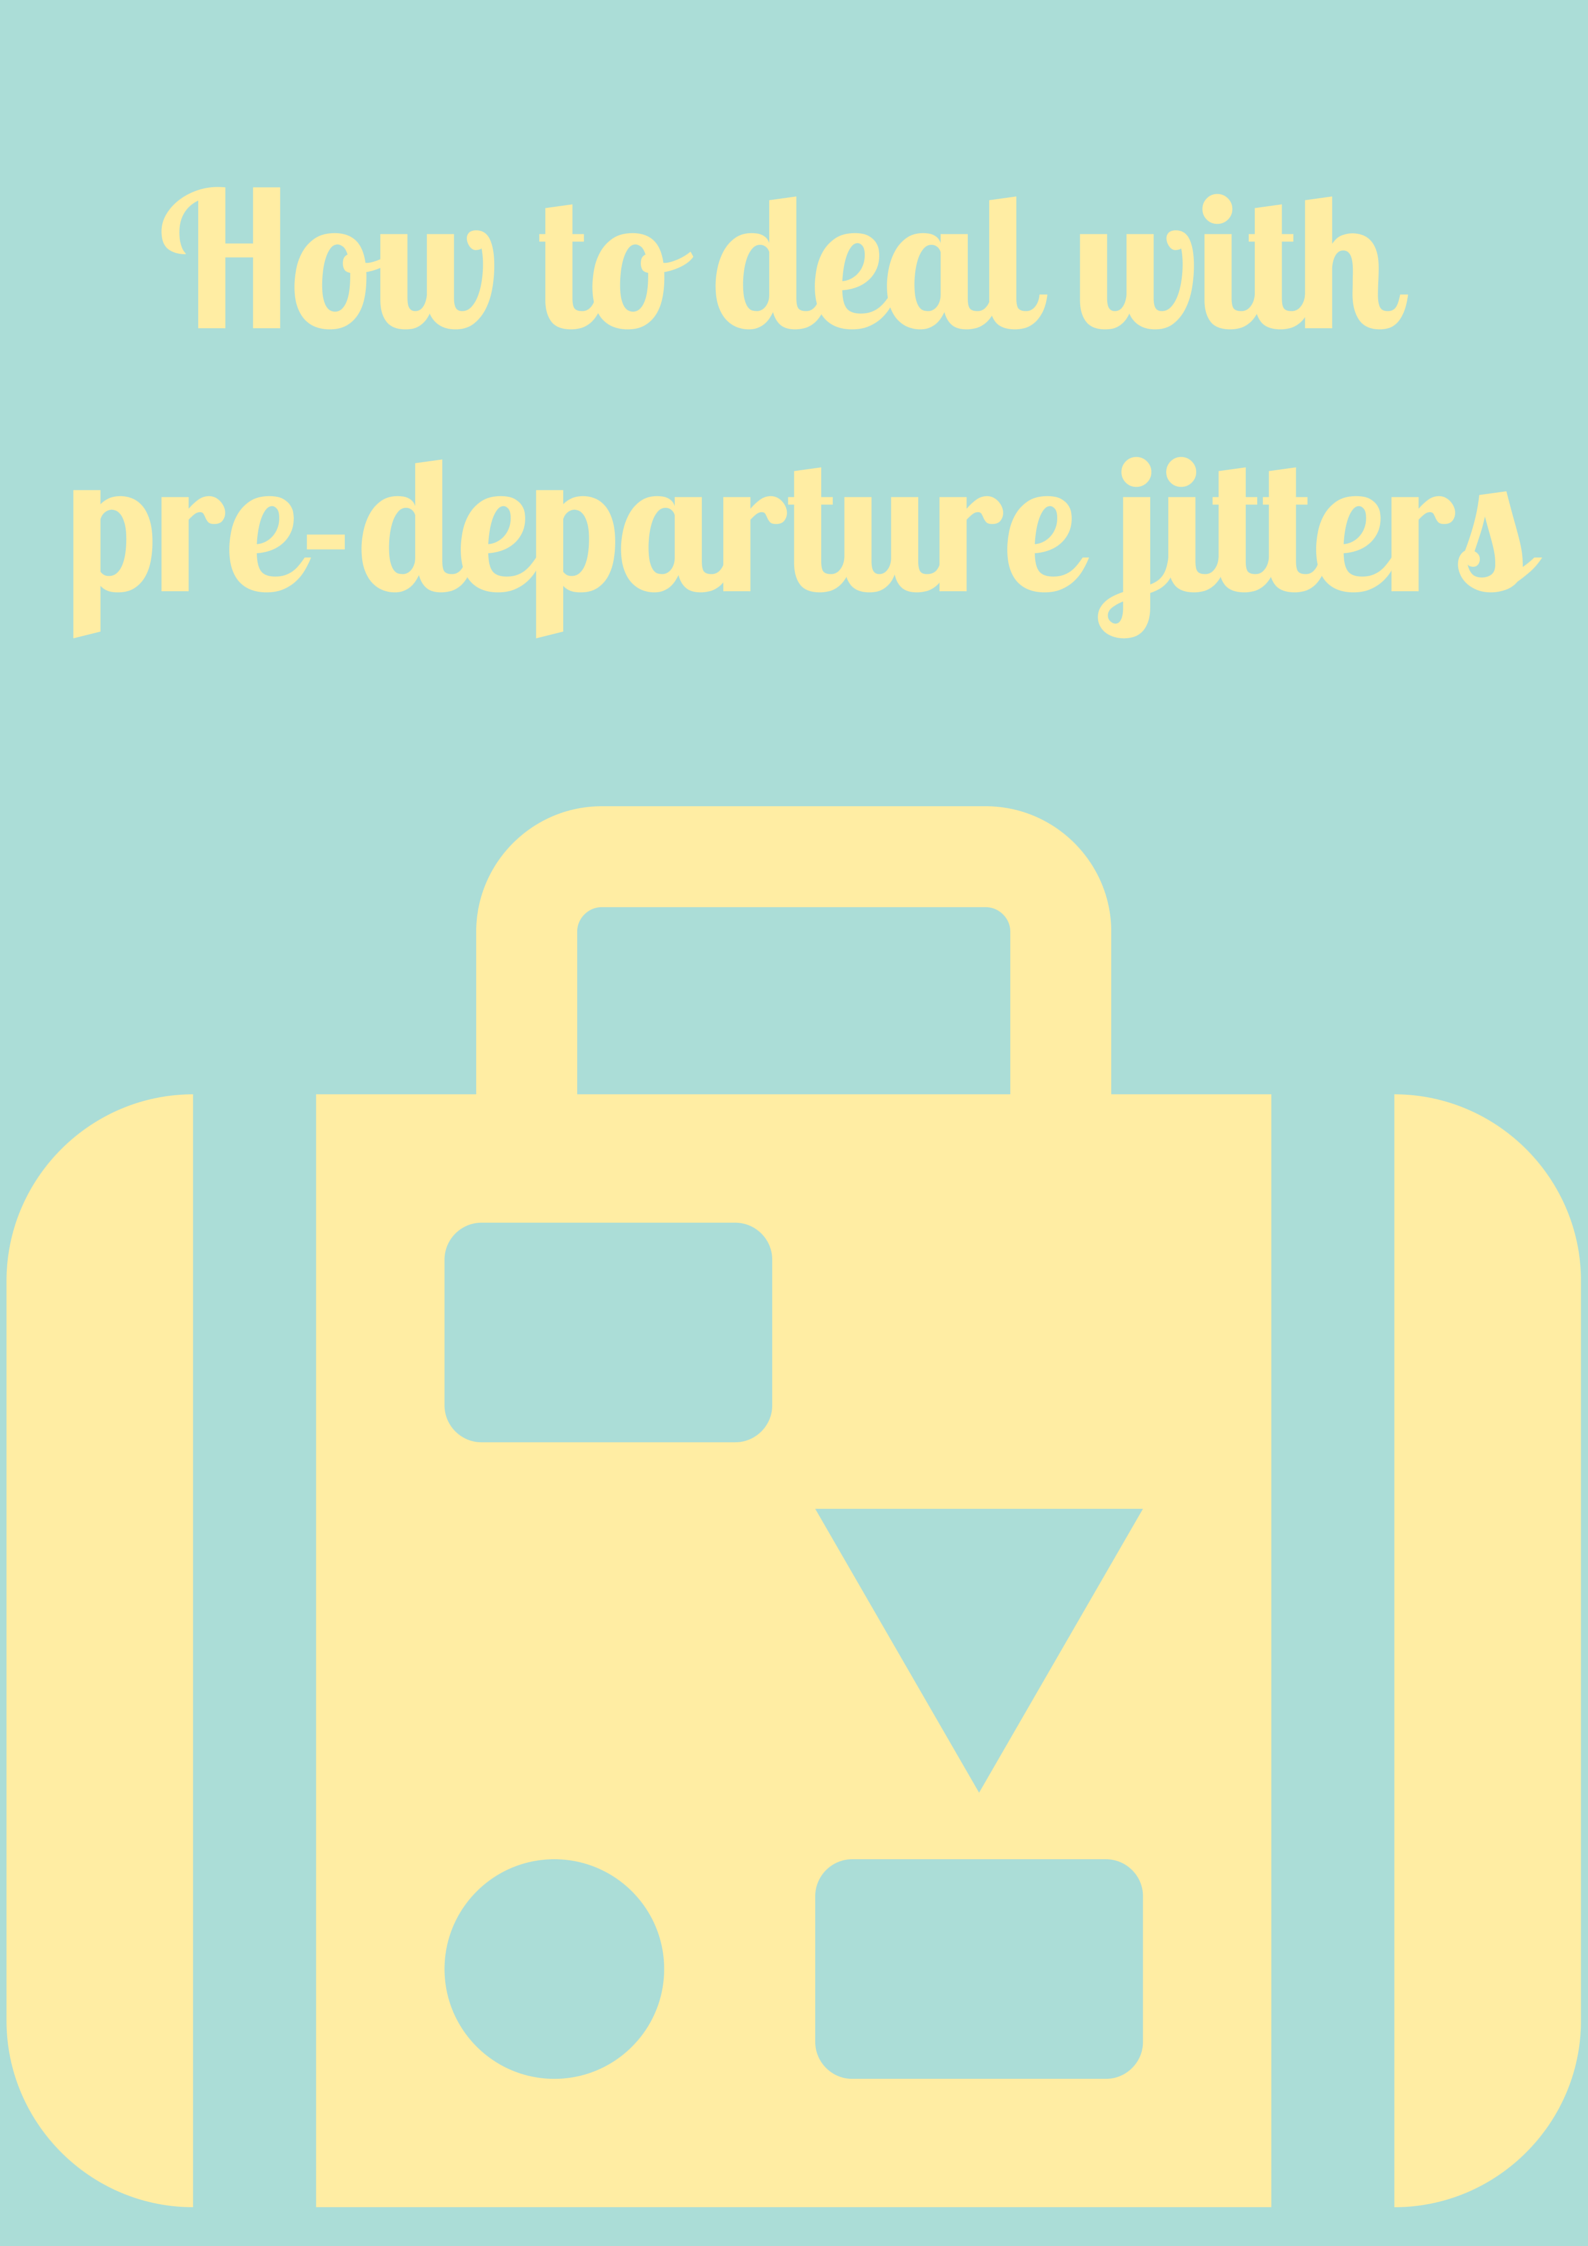 About to go off travelling? Nervous? How about these tips to keep the pre-departure nerves at bay.